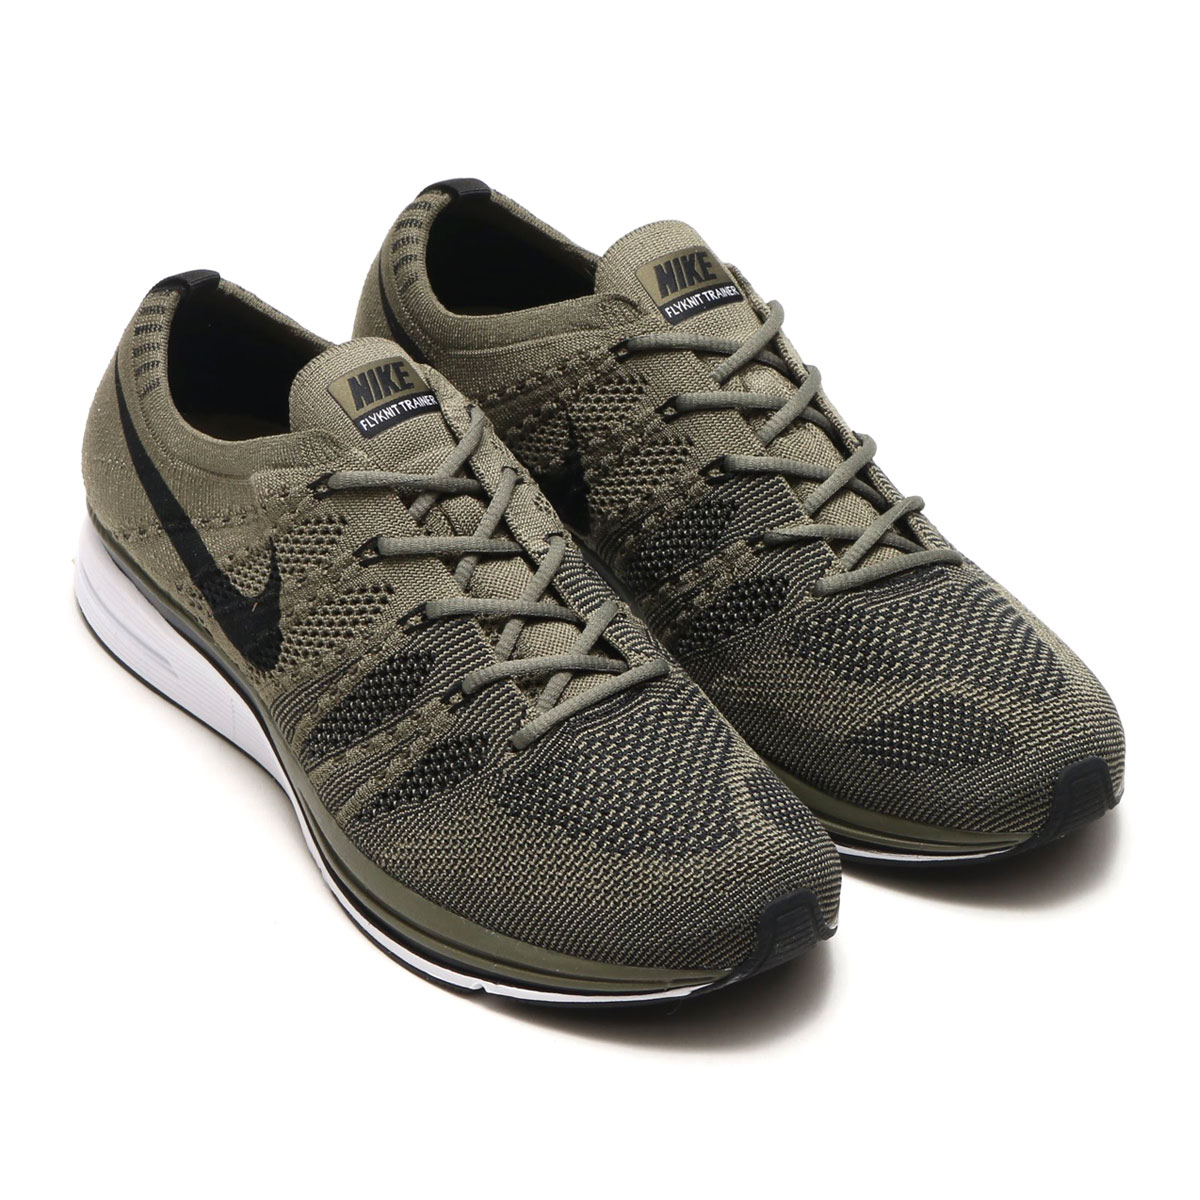 684e698ff557 The Nike fried food knit trainer born in response to the request of people  is realization with the everyday style that I wear it and add it to a  feeling and ...